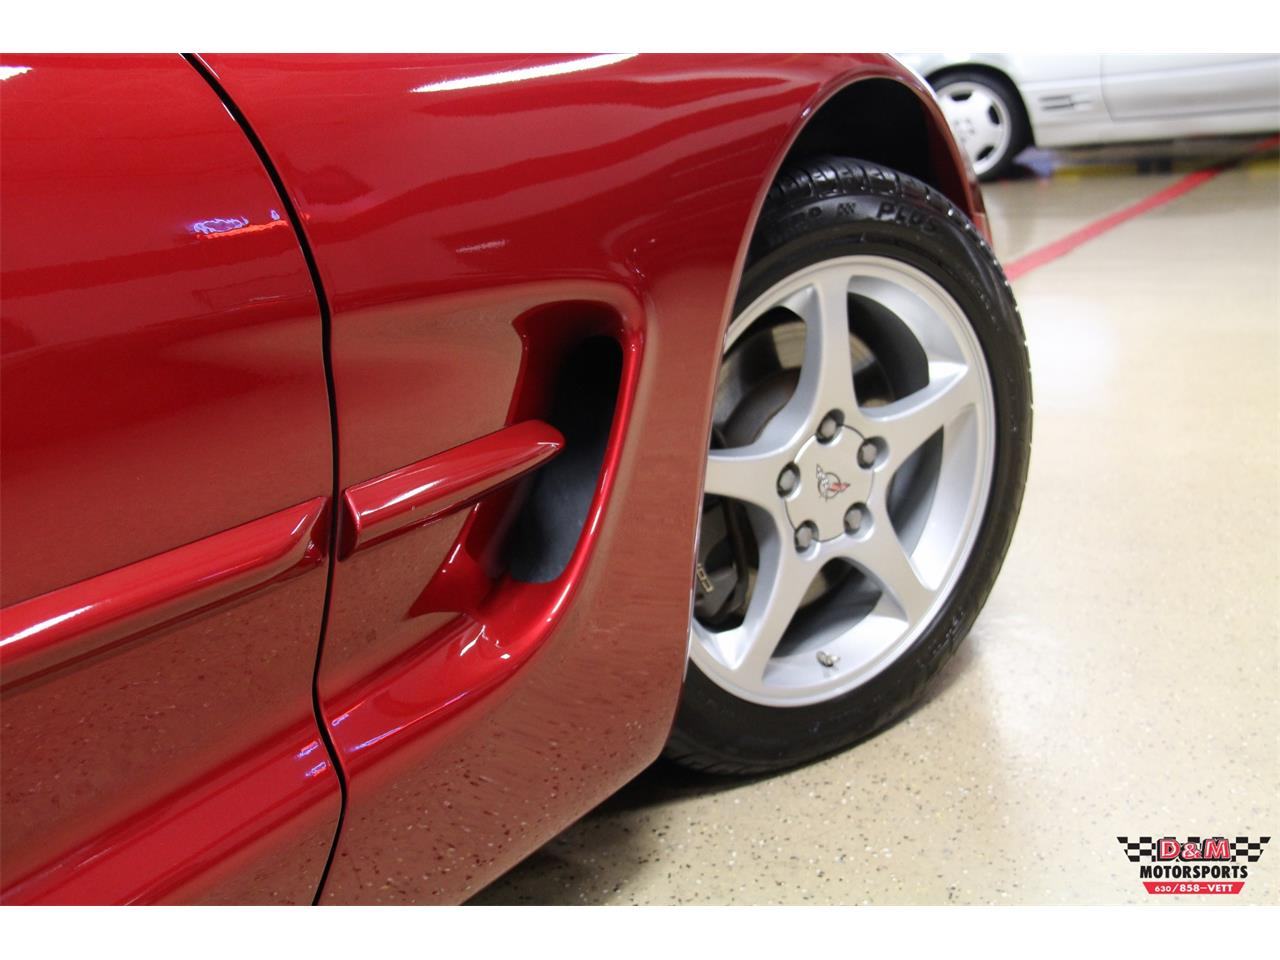 Large Picture of '00 Chevrolet Corvette located in Illinois Offered by D & M Motorsports - LVA3